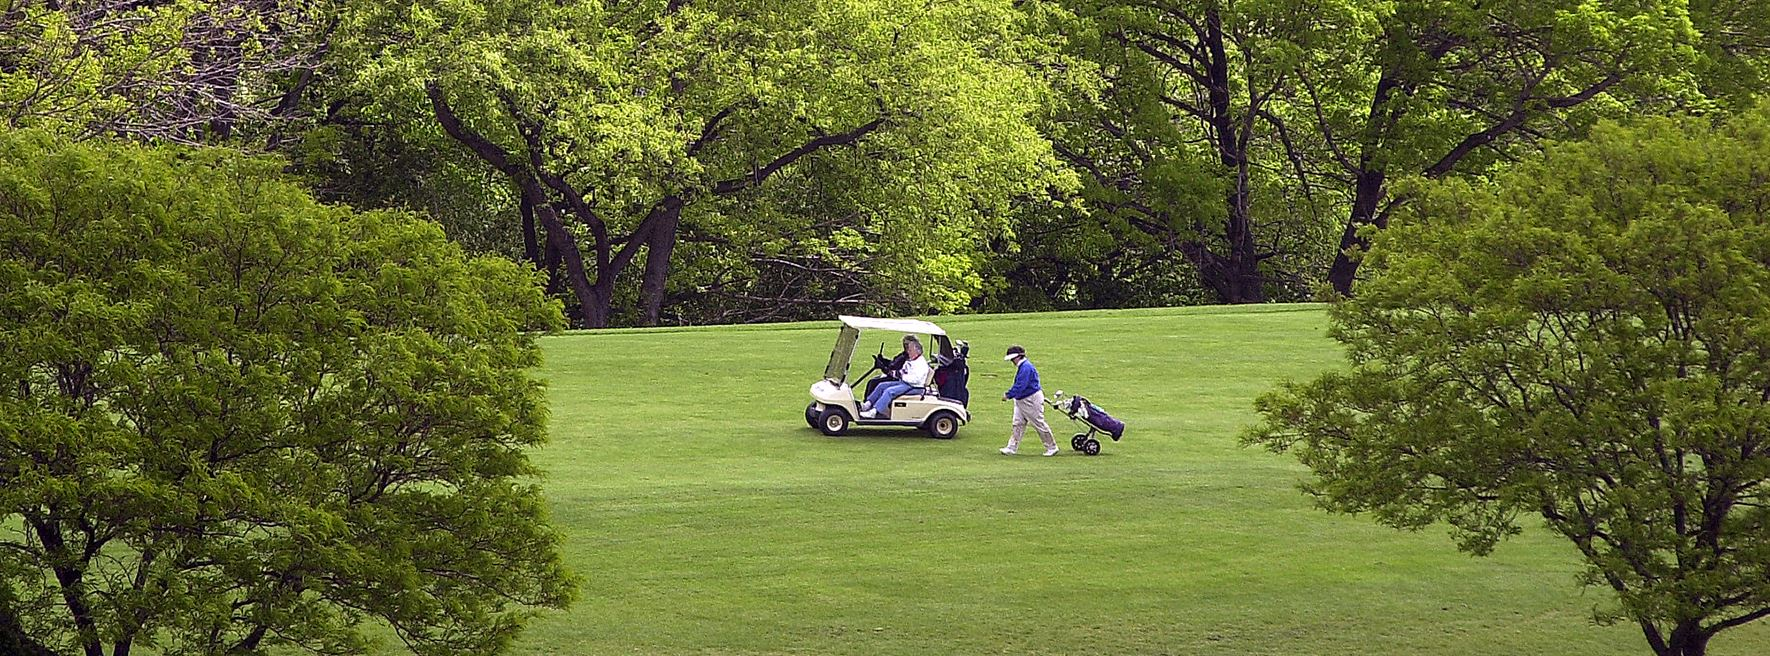 Mt. Lebanon golf course